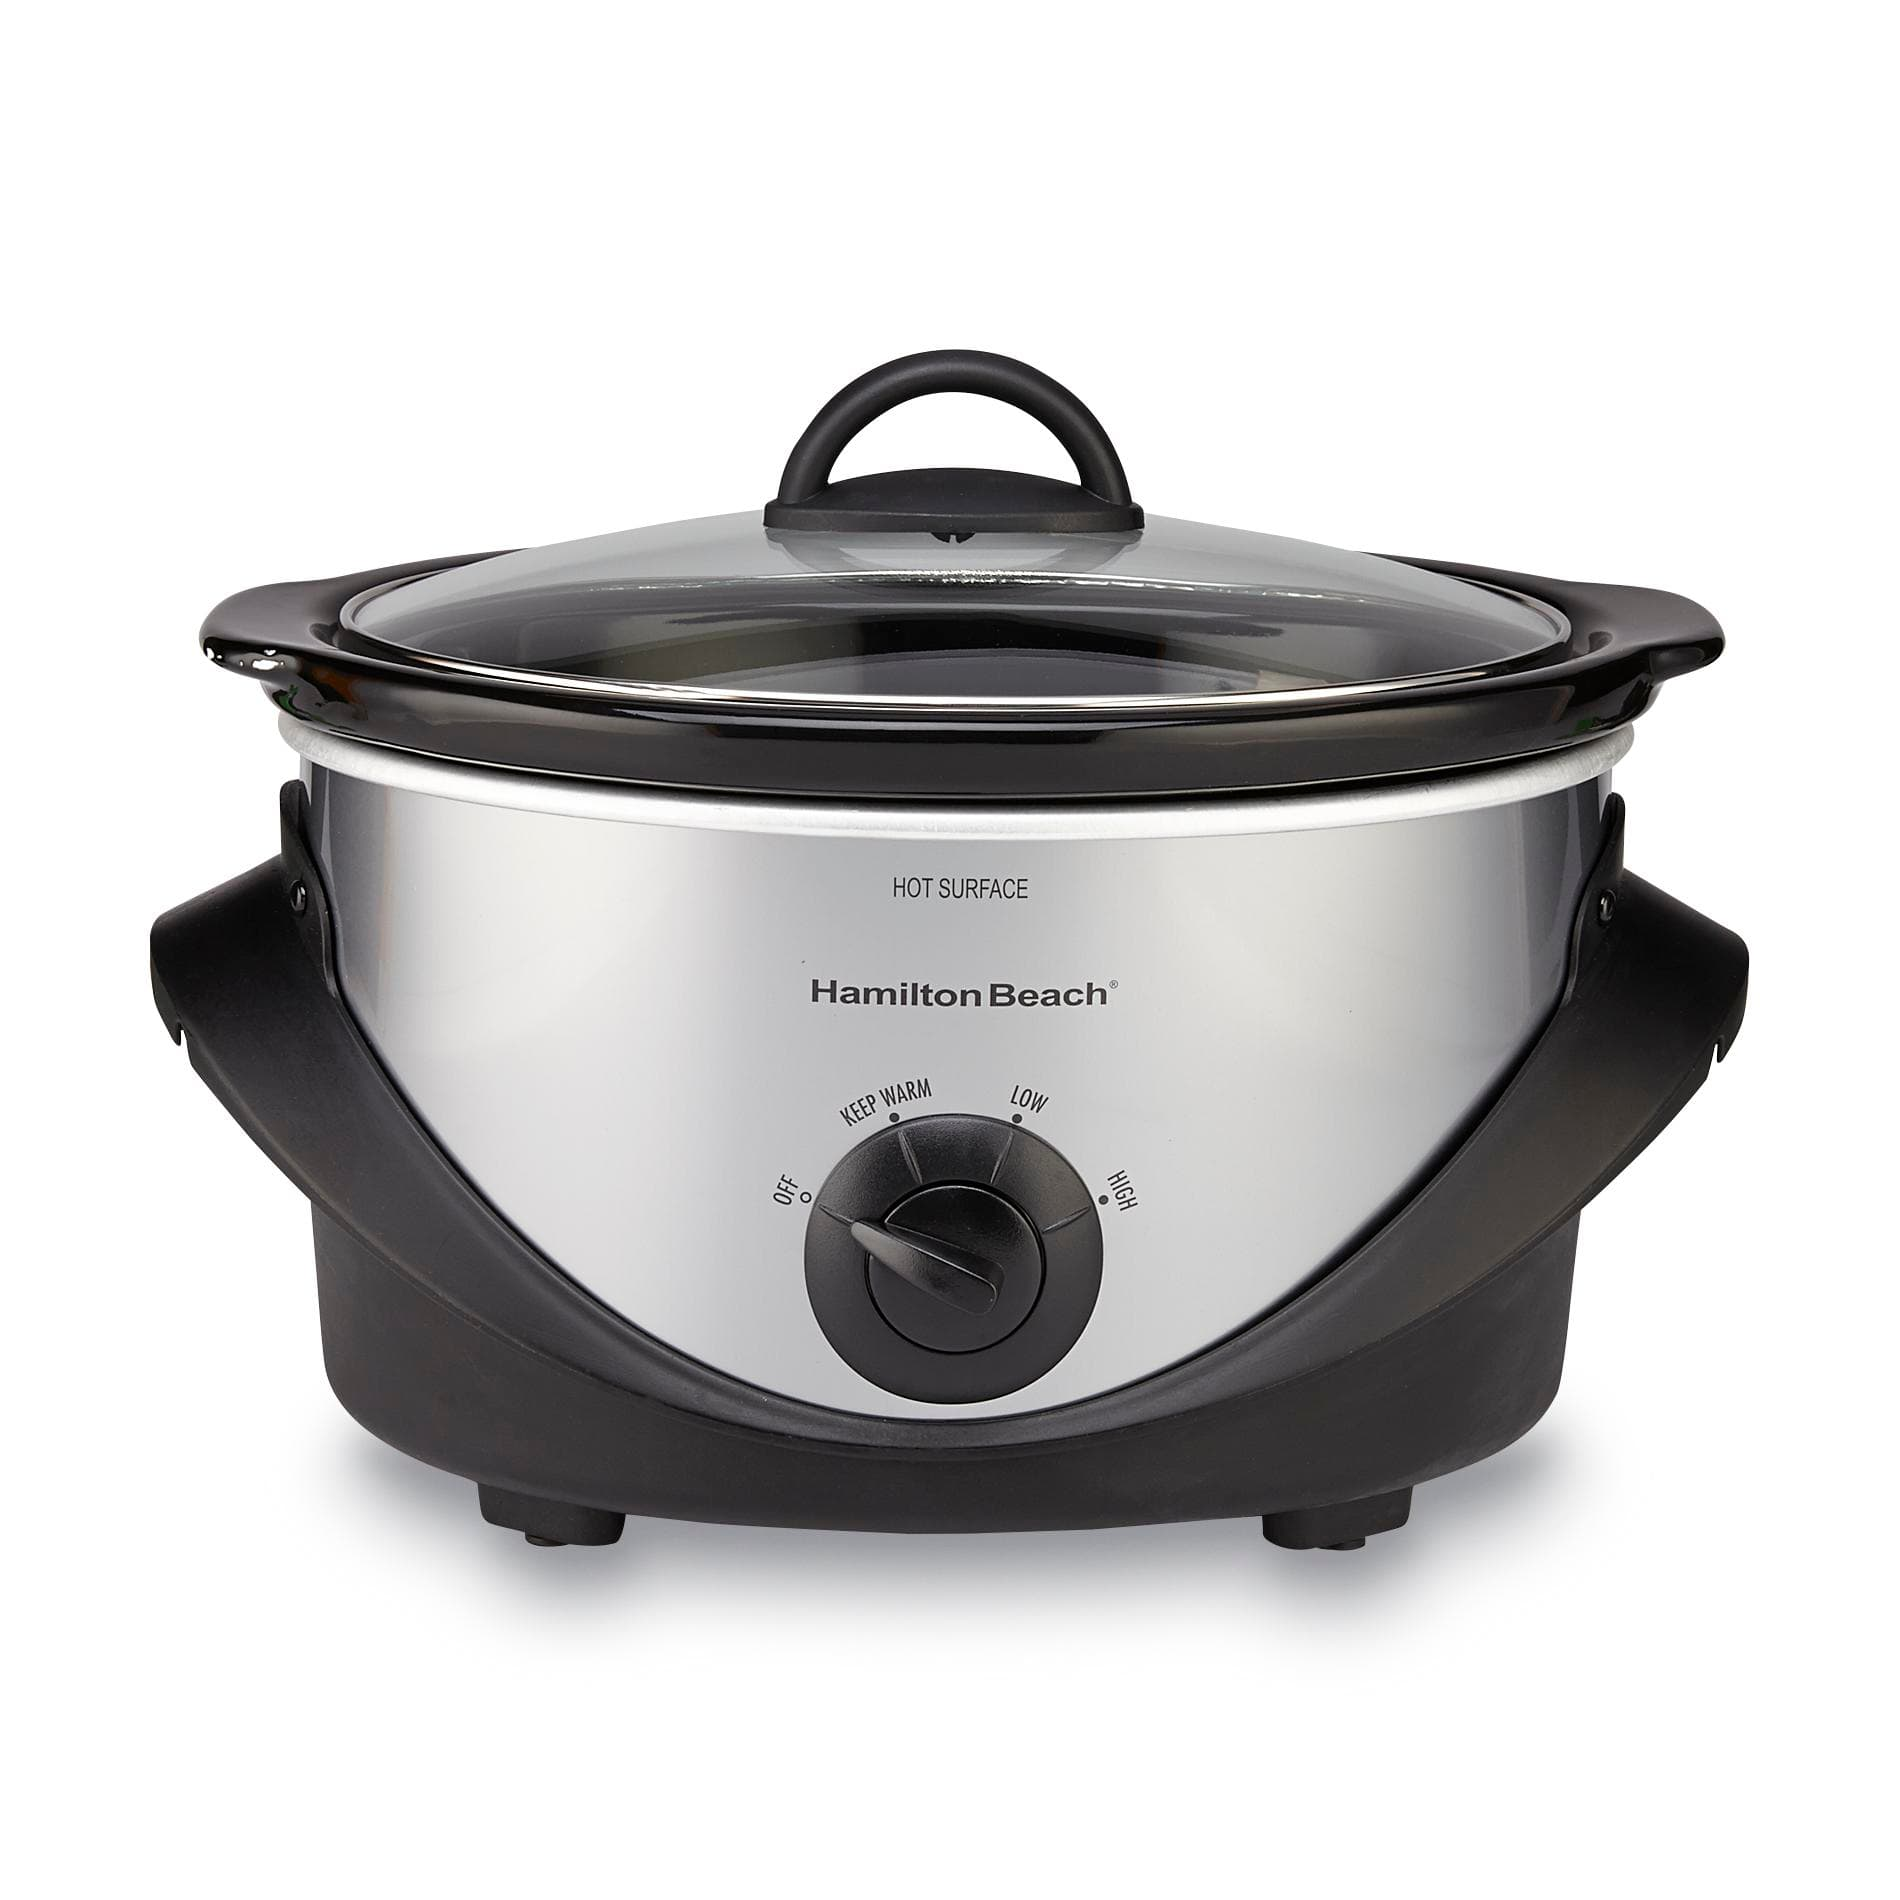 4-Quart Hamilton Beach Stainless Steel Slow Cooker  $10 + Free Store Pickup